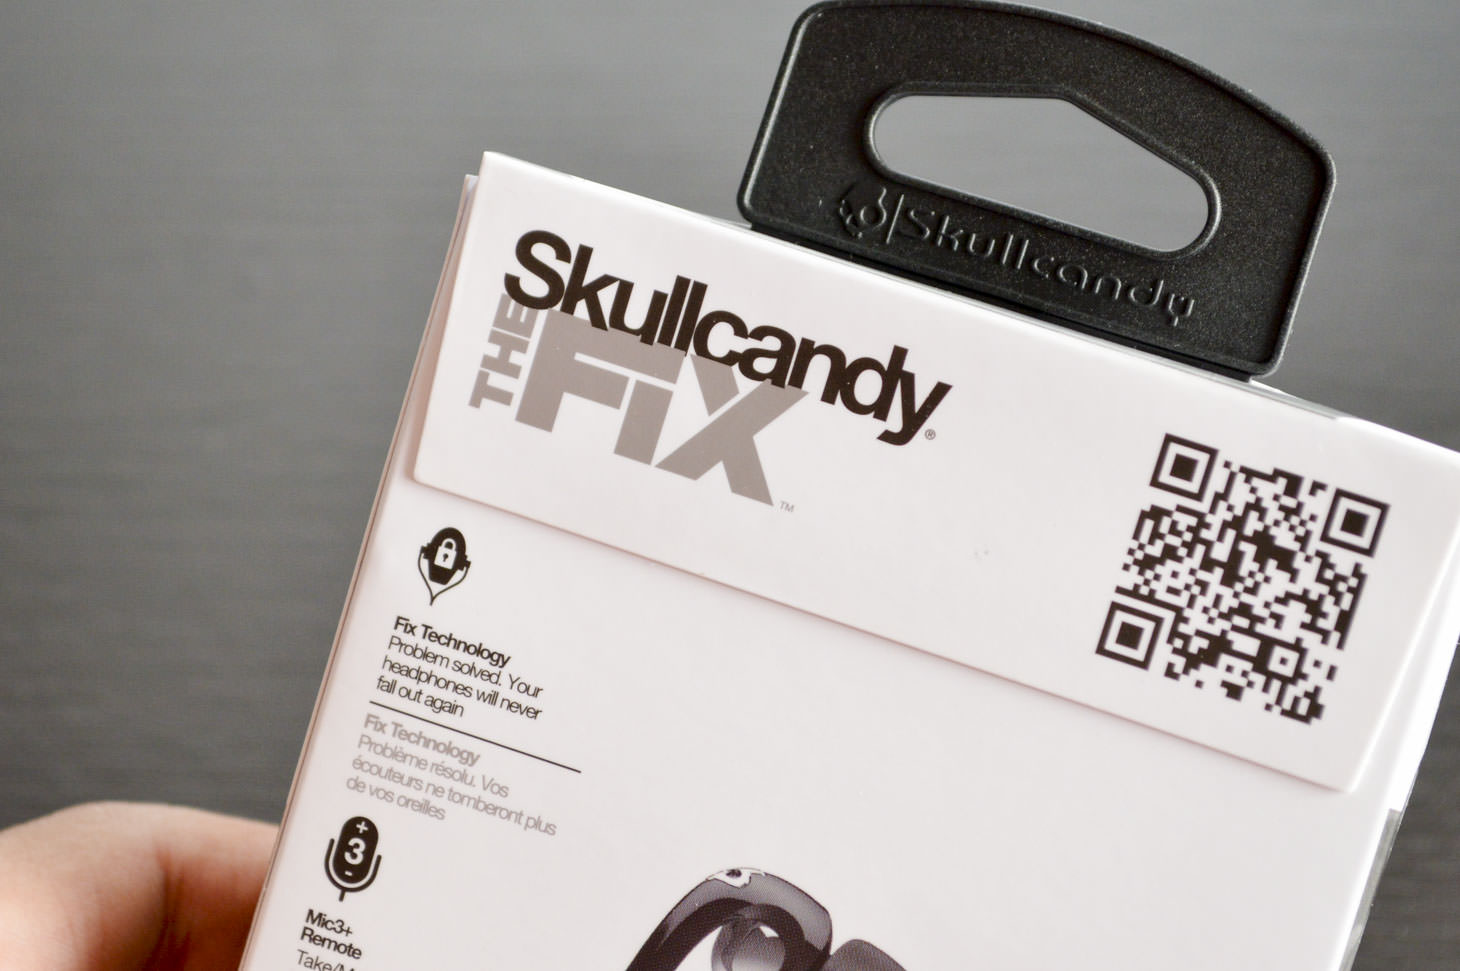 002_20160403_skullcandy-the-fix